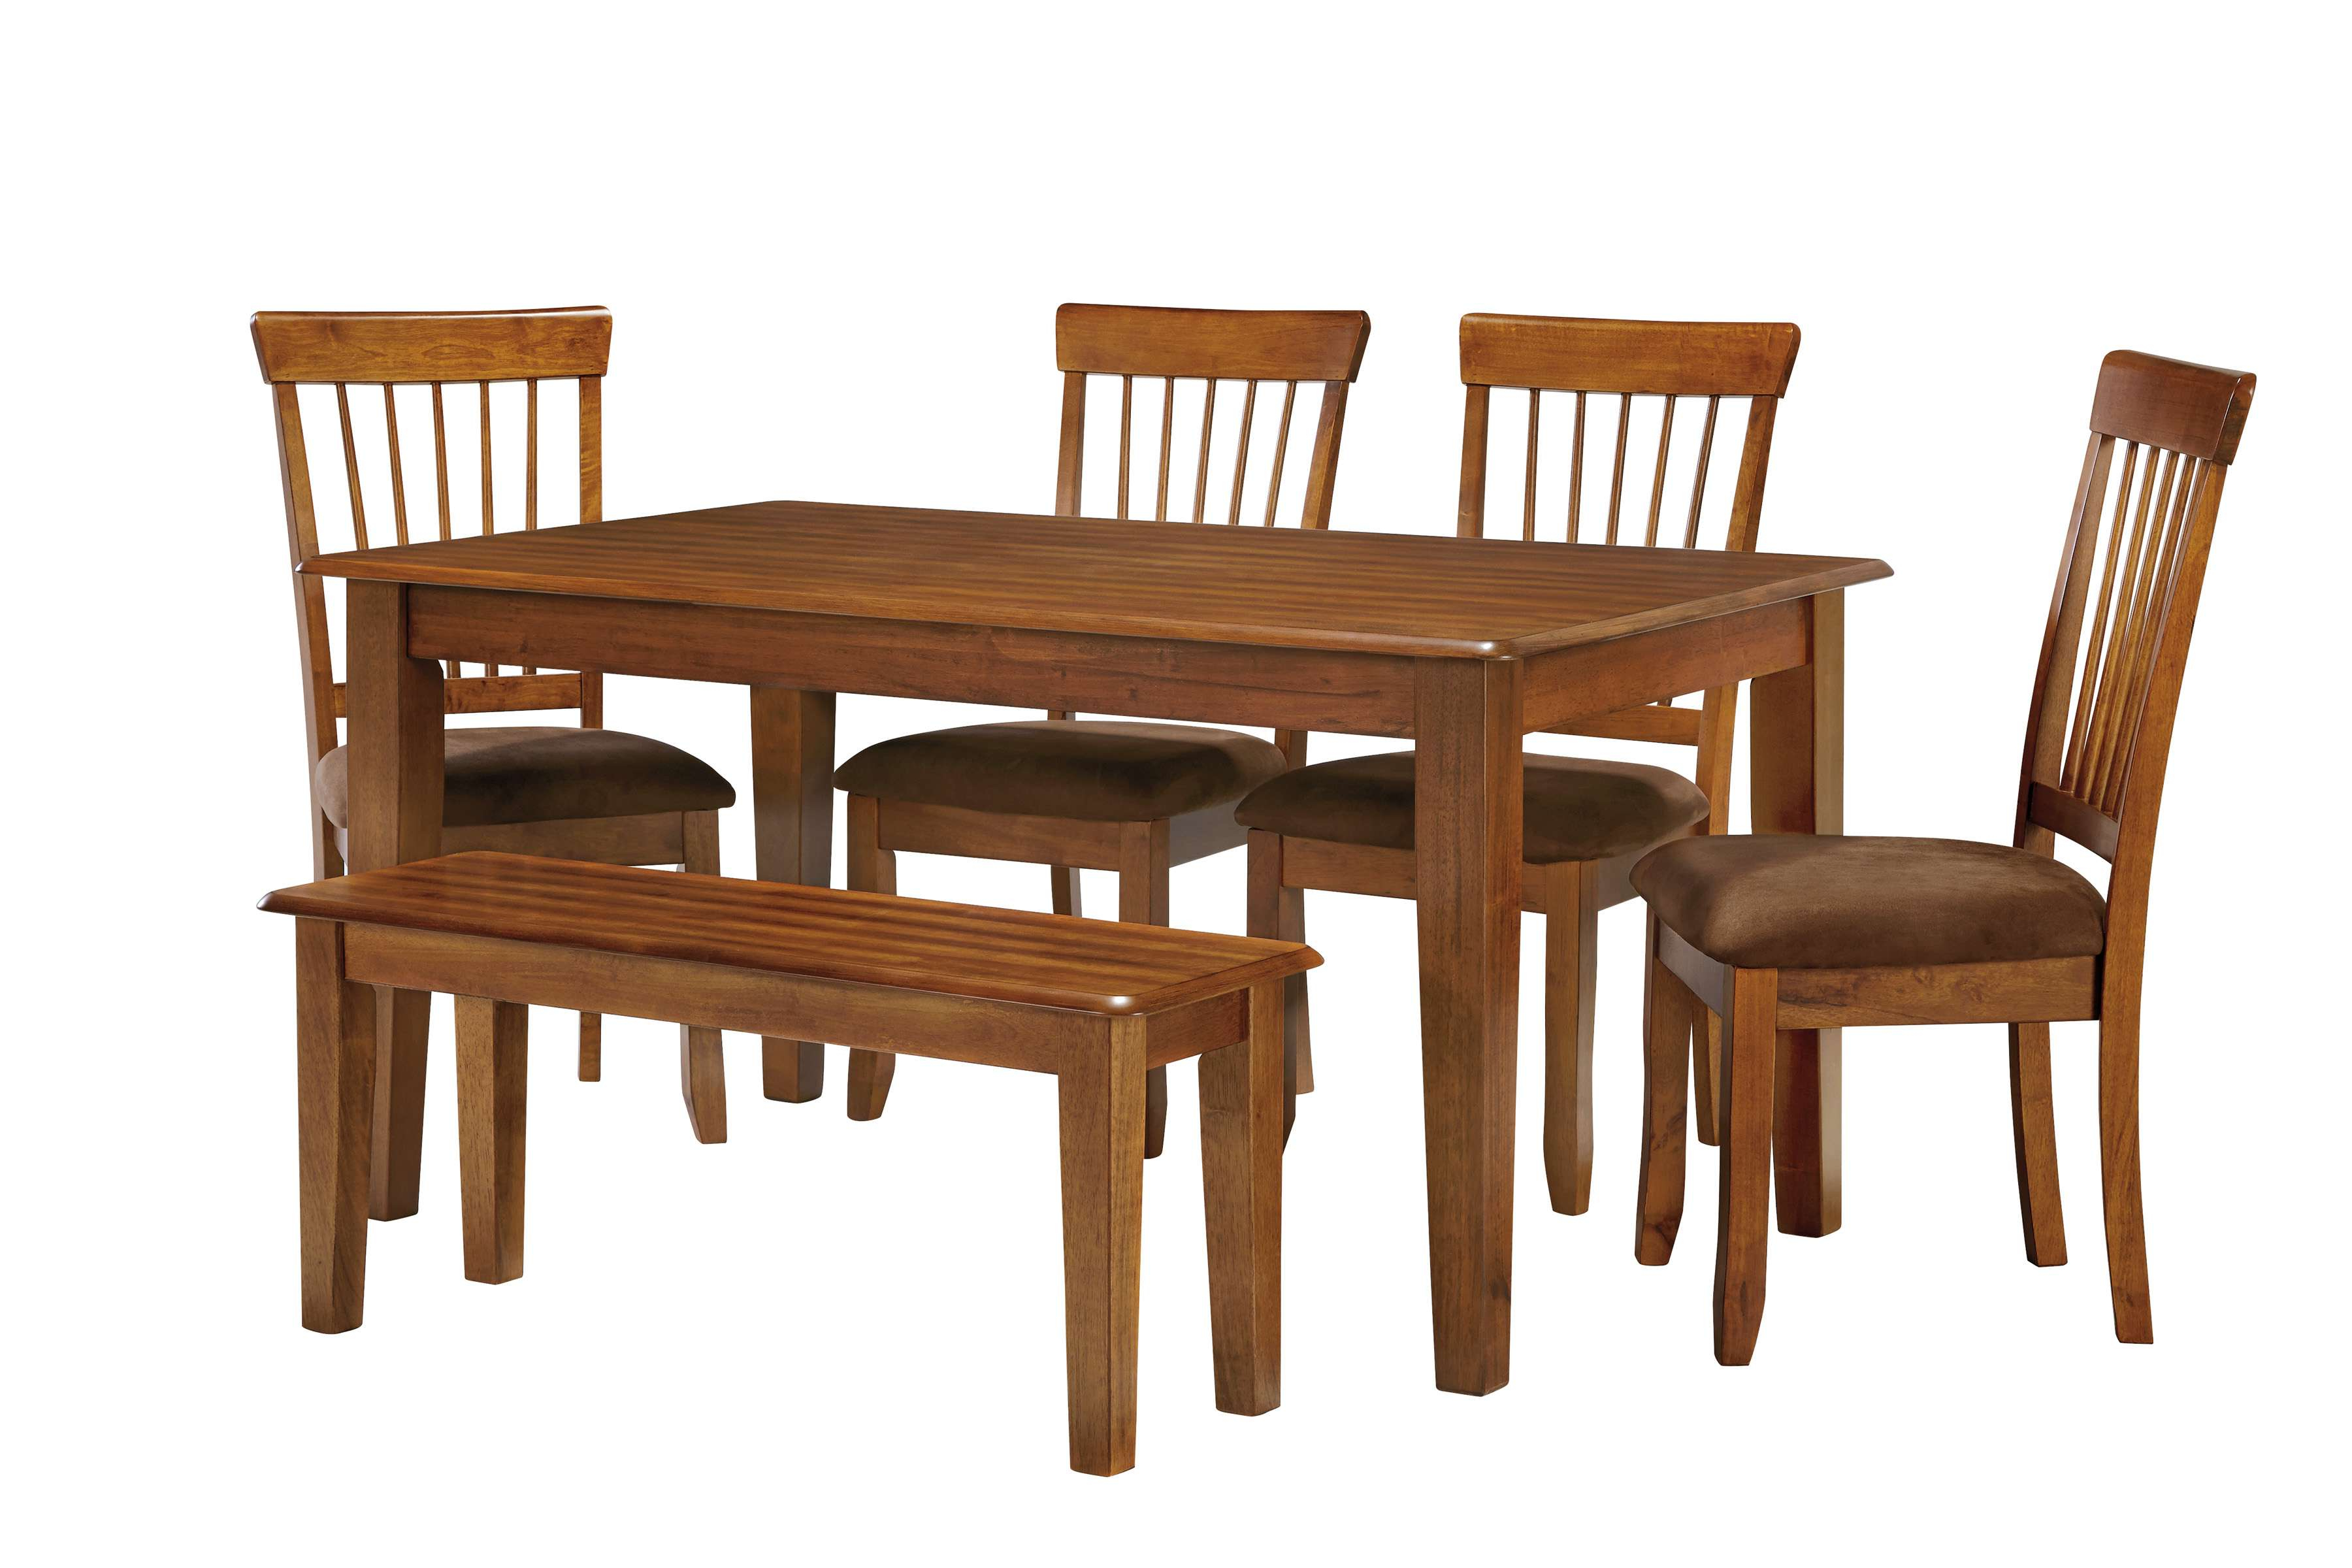 Hood Canal 3 Piece Dining Sets With Preferred Signature Designashley D199 01, D199 01, D199 25, D199 (View 12 of 20)